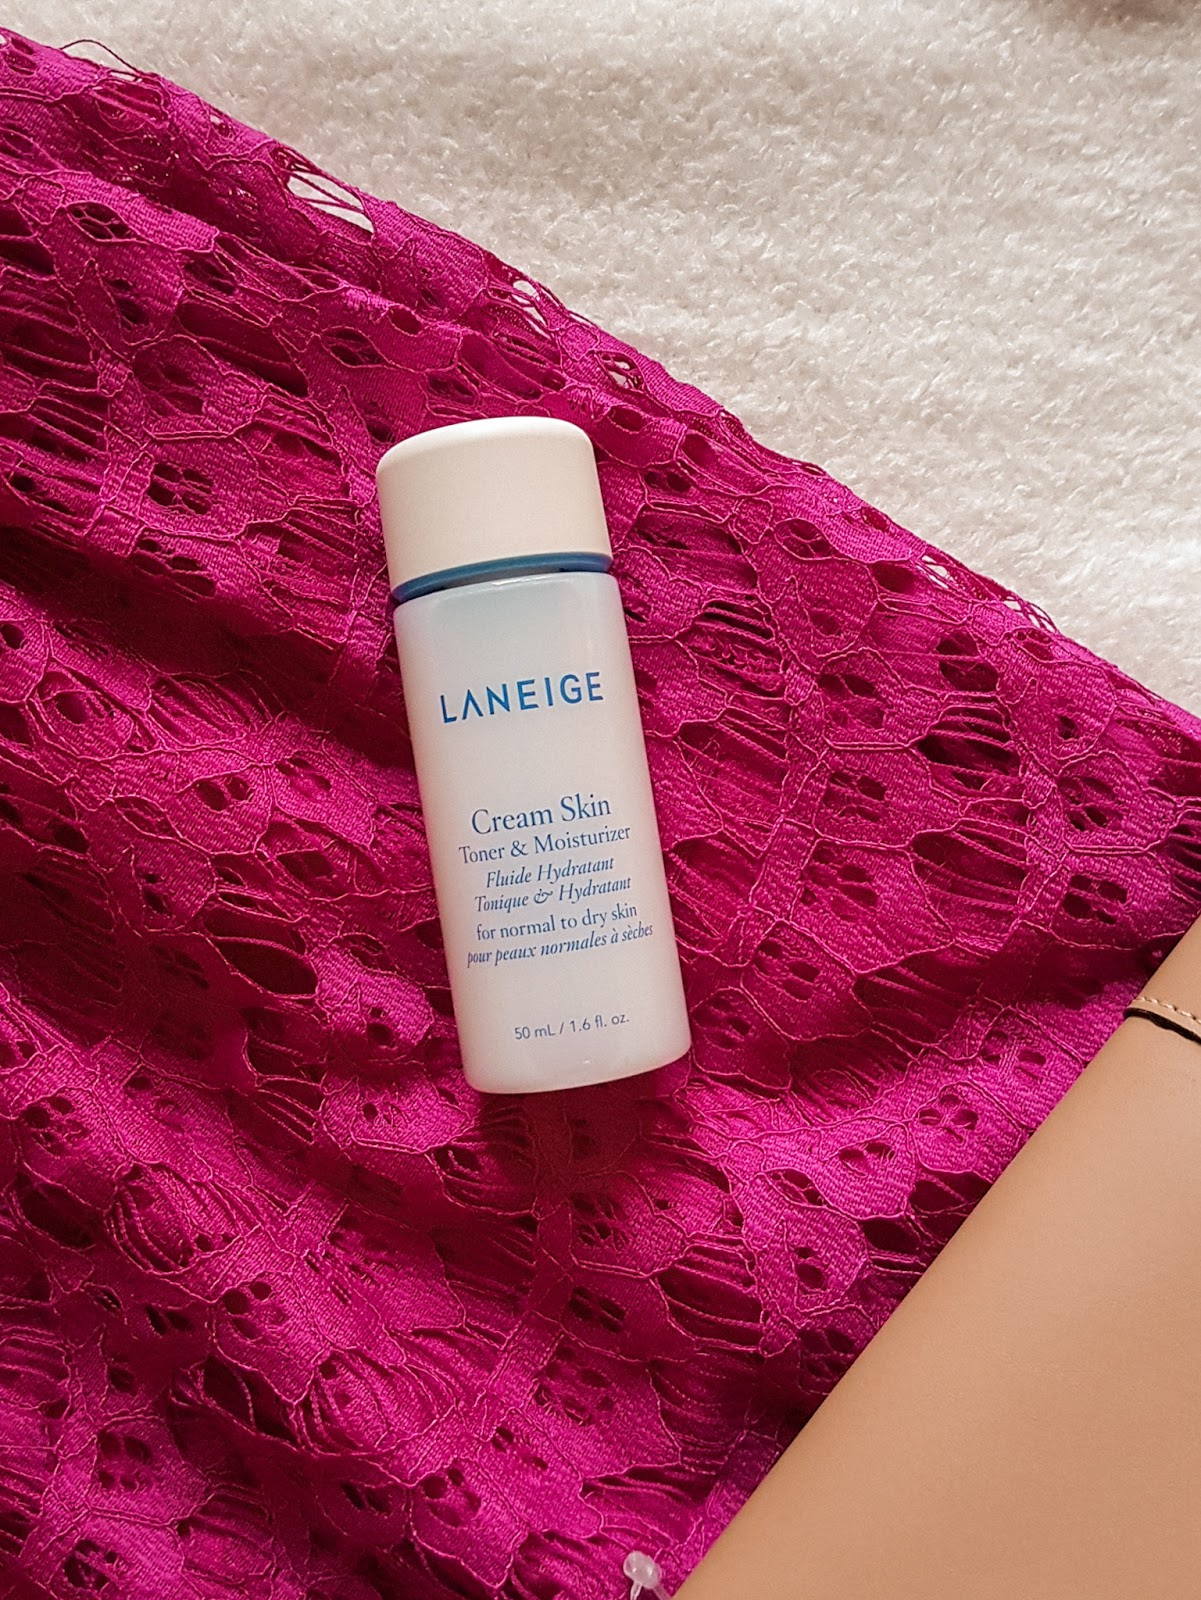 A two in one moisturizer and toner from Laneige